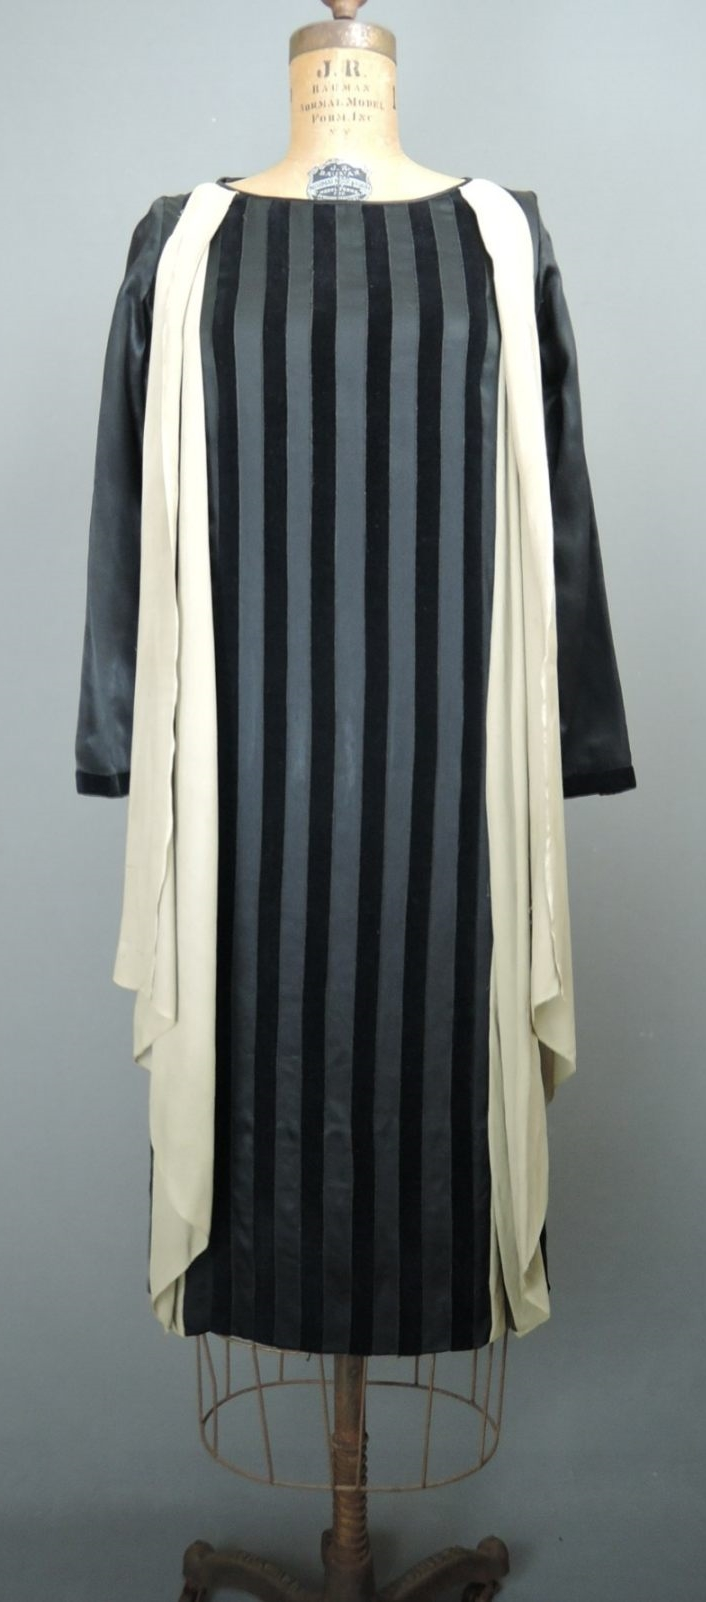 Vintage 1920s Irene Castle Corticelli Silk Dress, Black Satin & Velvet Striped, 34 bust